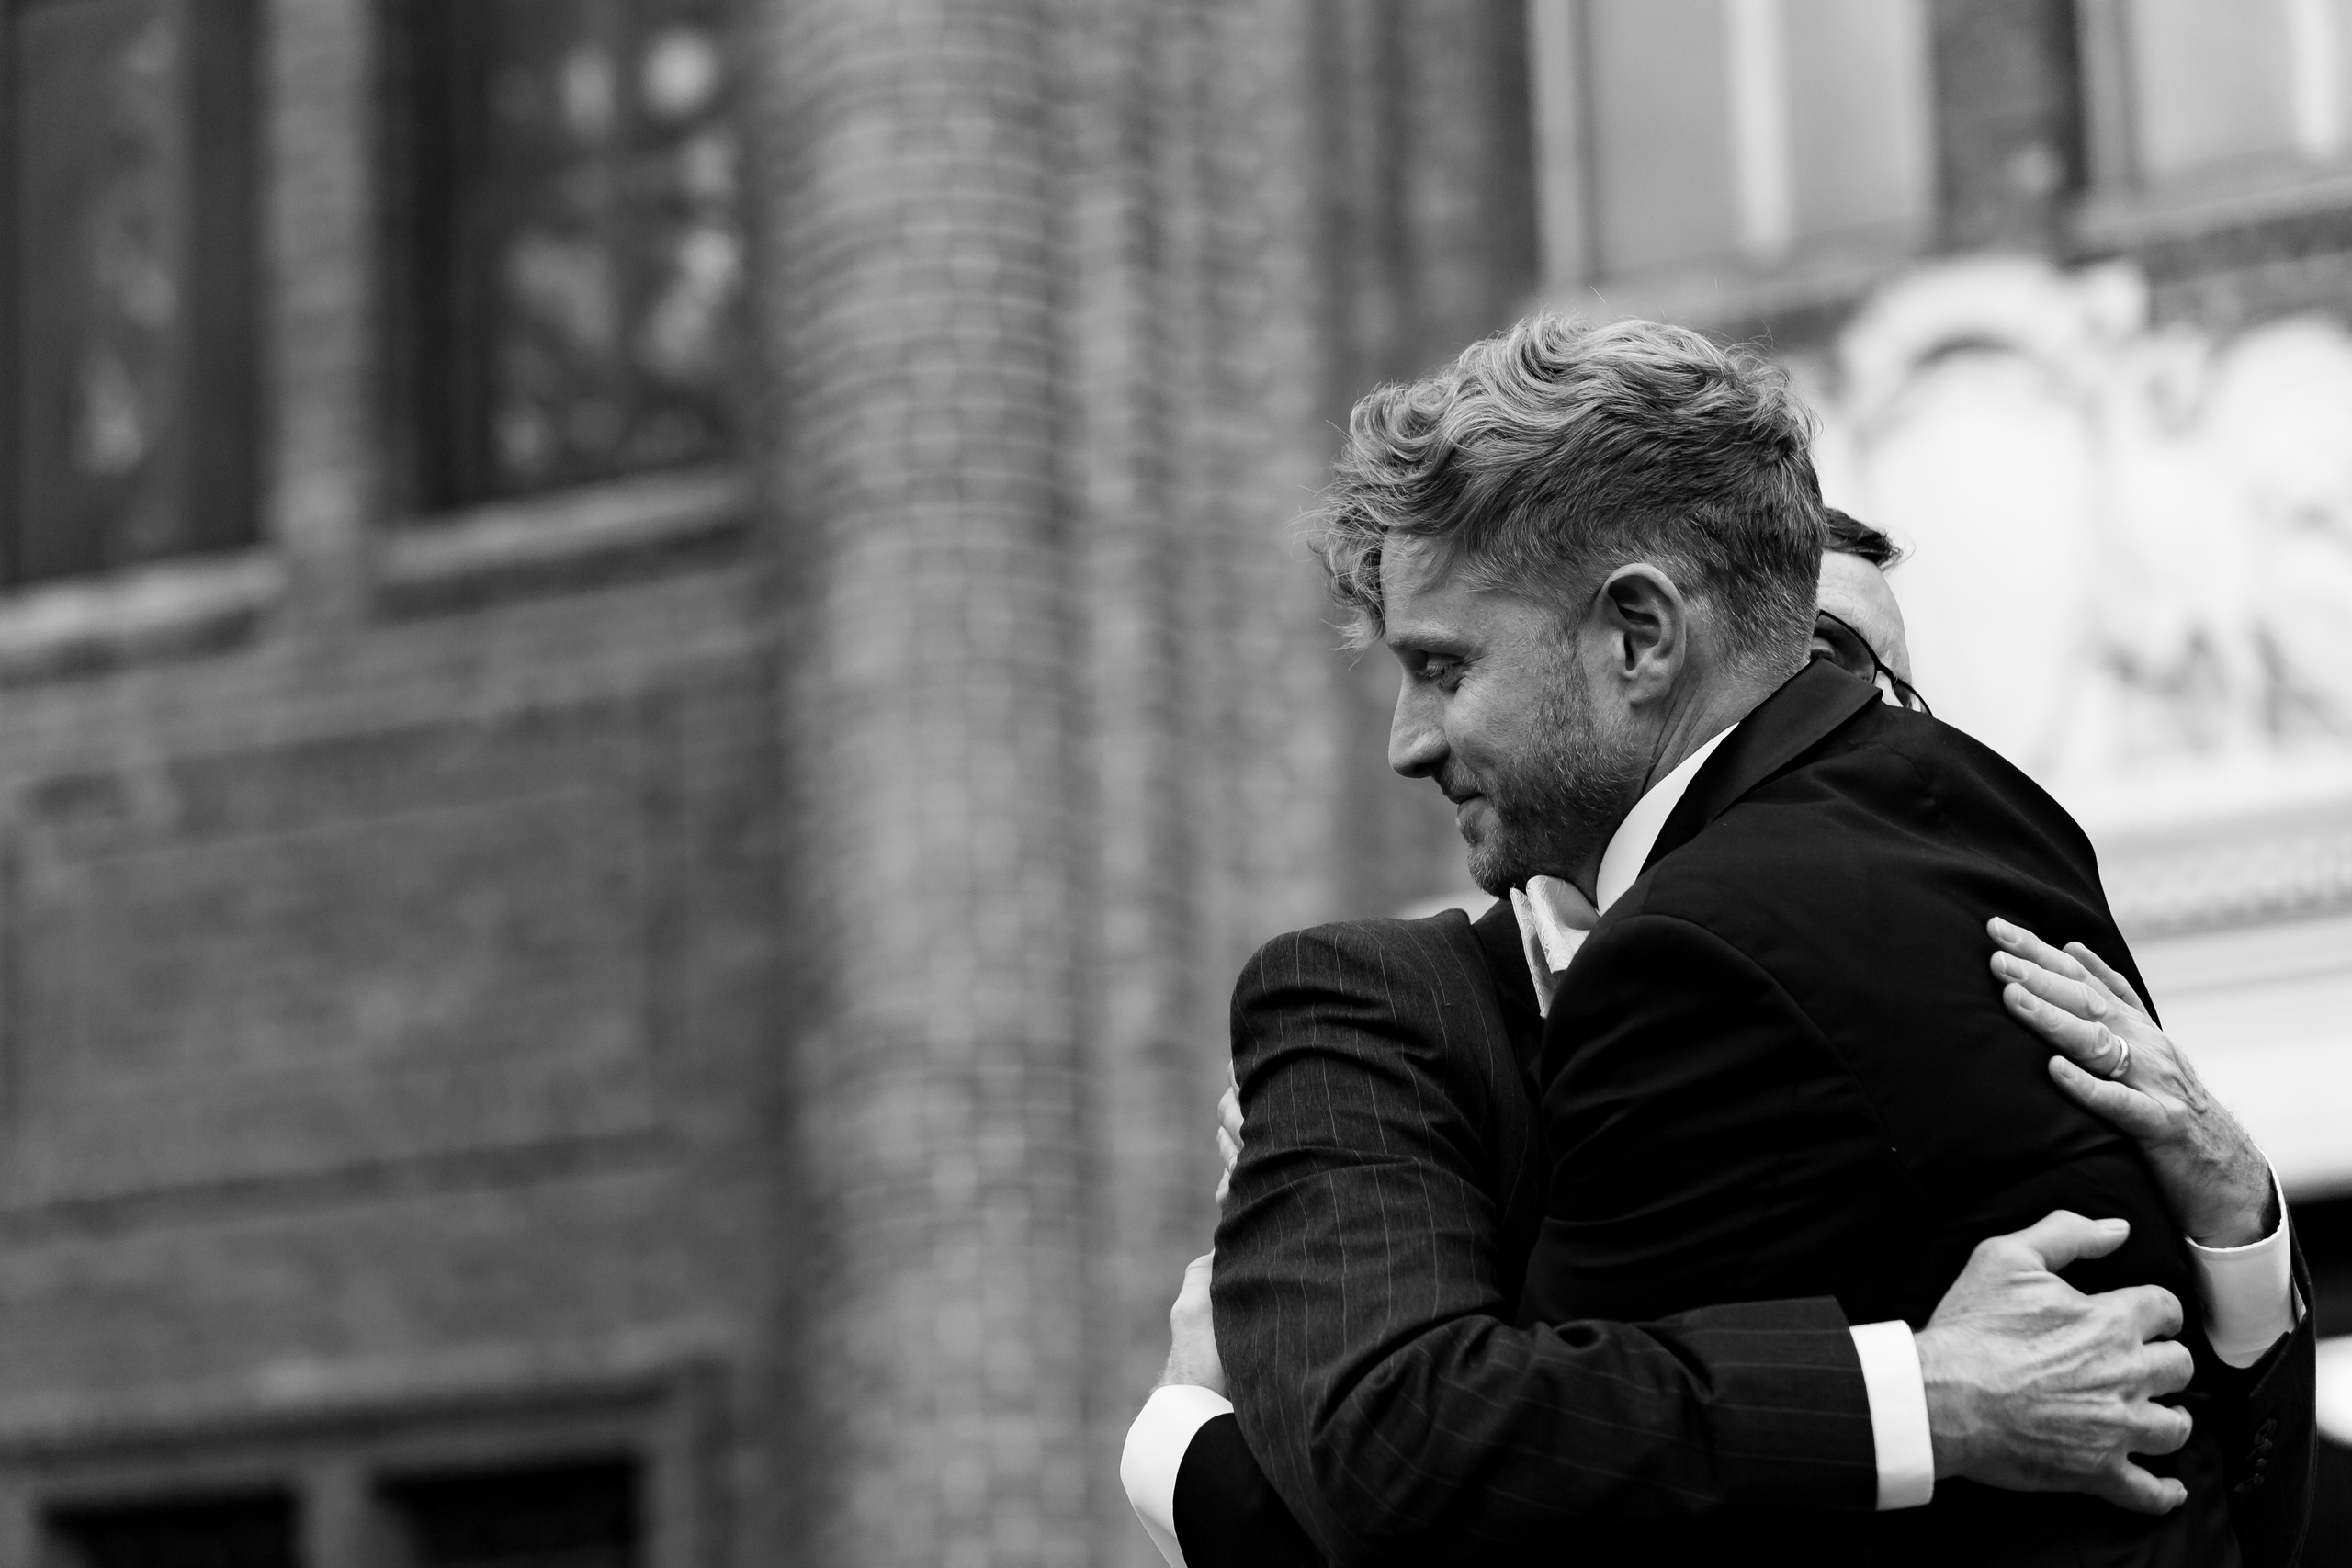 The groom shares a hug with his father during the wedding ceremony at the Penn Museum in Philadelphia, Pennsylvania.